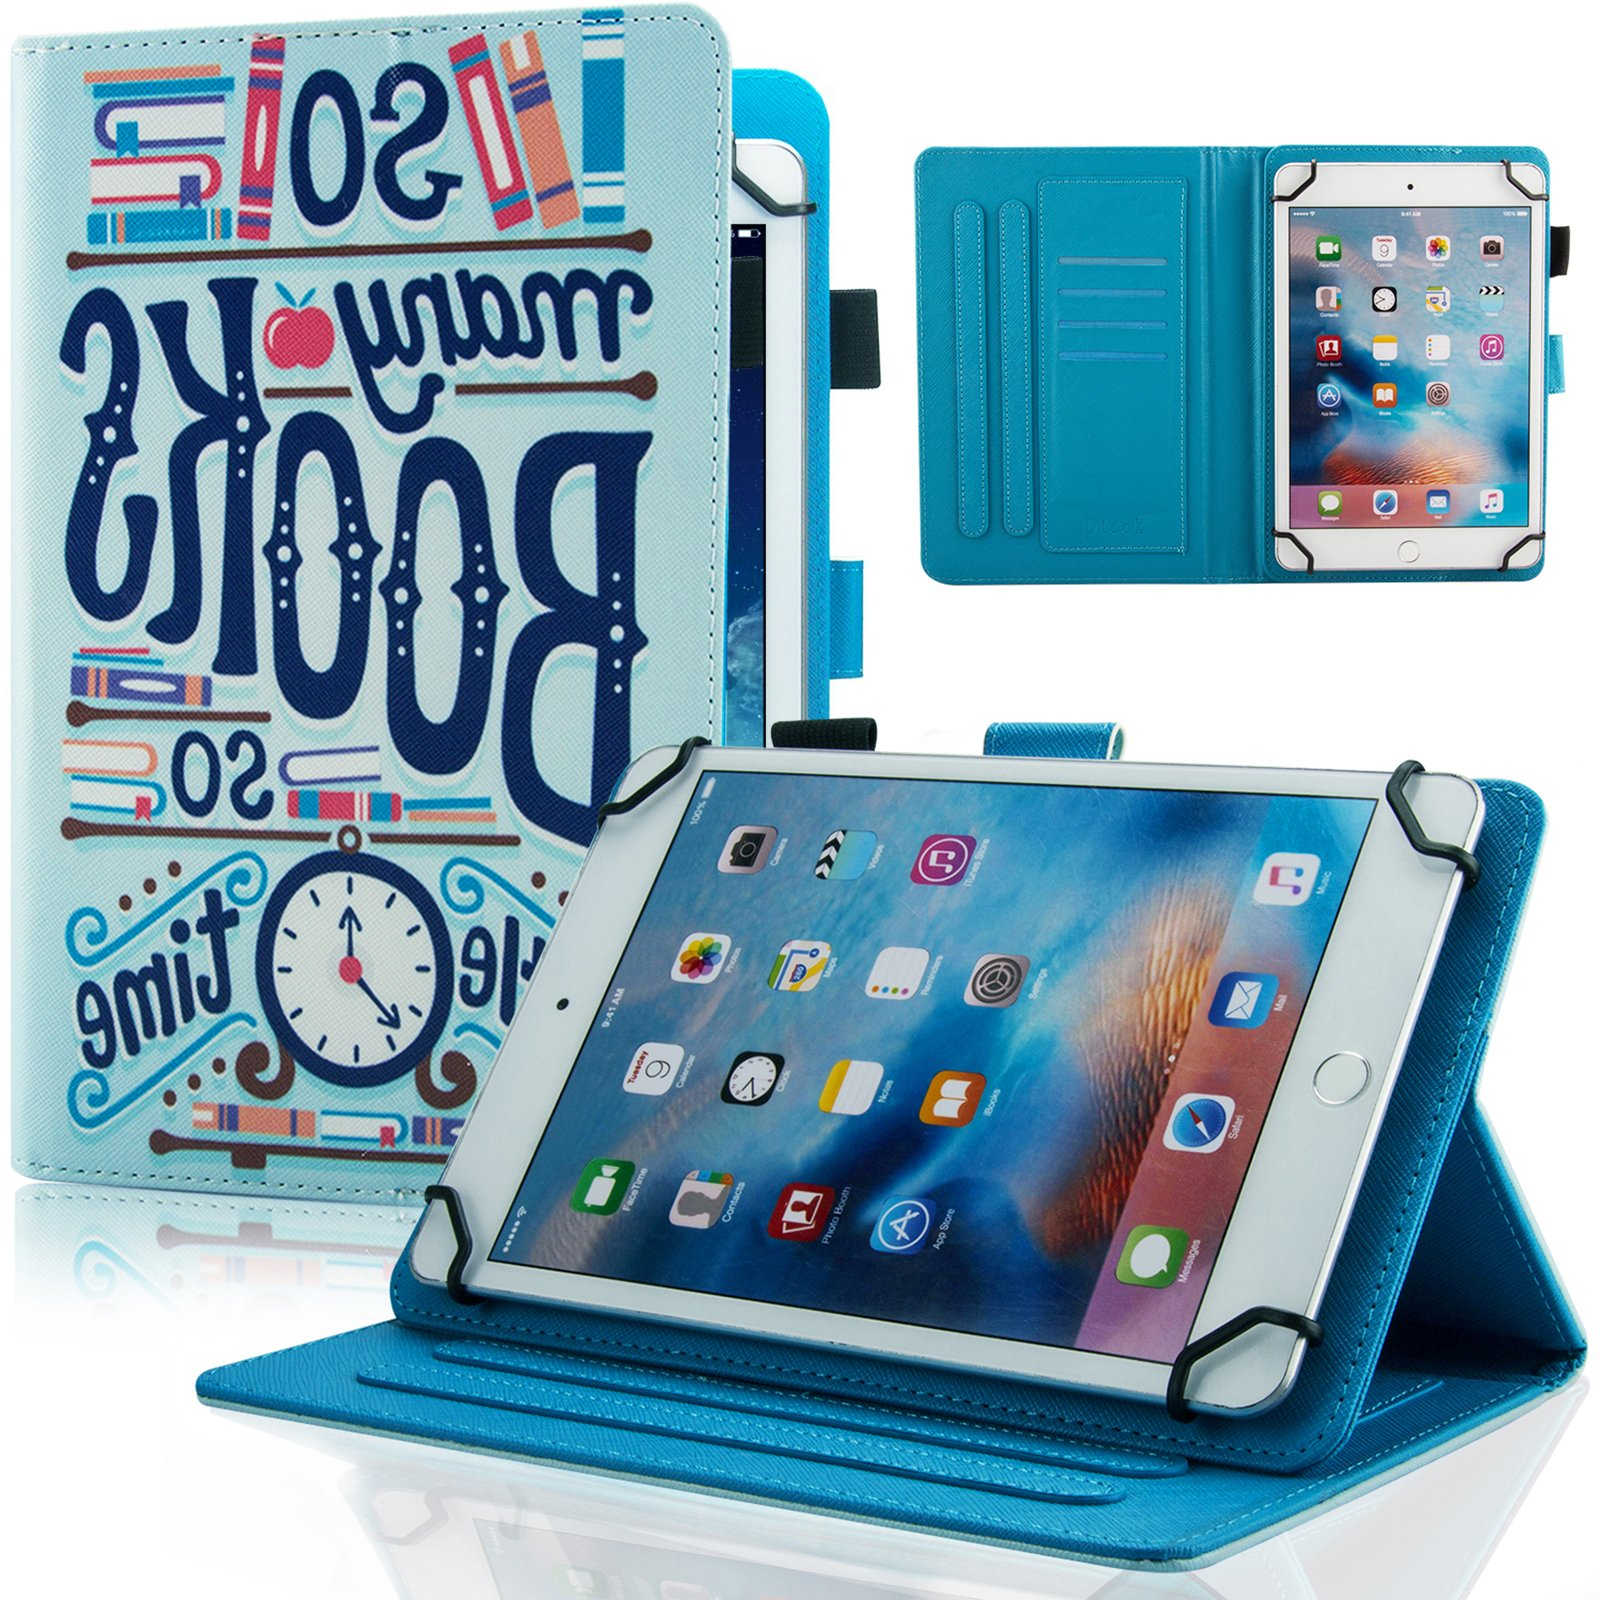 Universal Case for 6.5-7.5 inch Tablet, Dteck Slim Light PU Leather Protective Case with Card Slots Cute Cartoon Flip Stand Wallet Cover for All 6.5-7.5 inch iPad Android Windows Tablet,Book